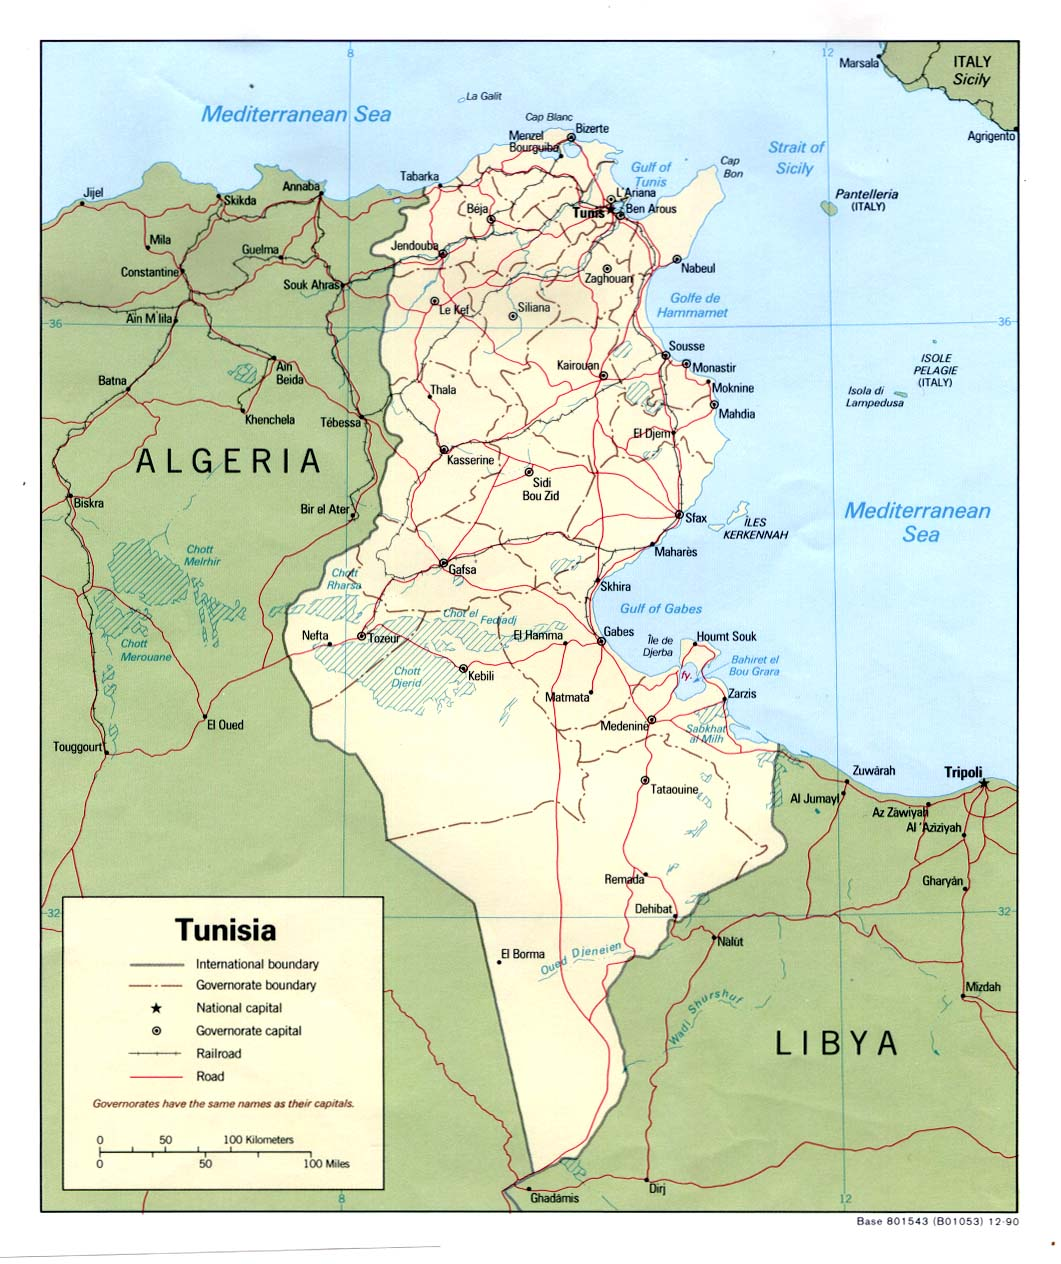 TUNISIA Maps - Perry-Casta��eda Map Collection - UT Library Online